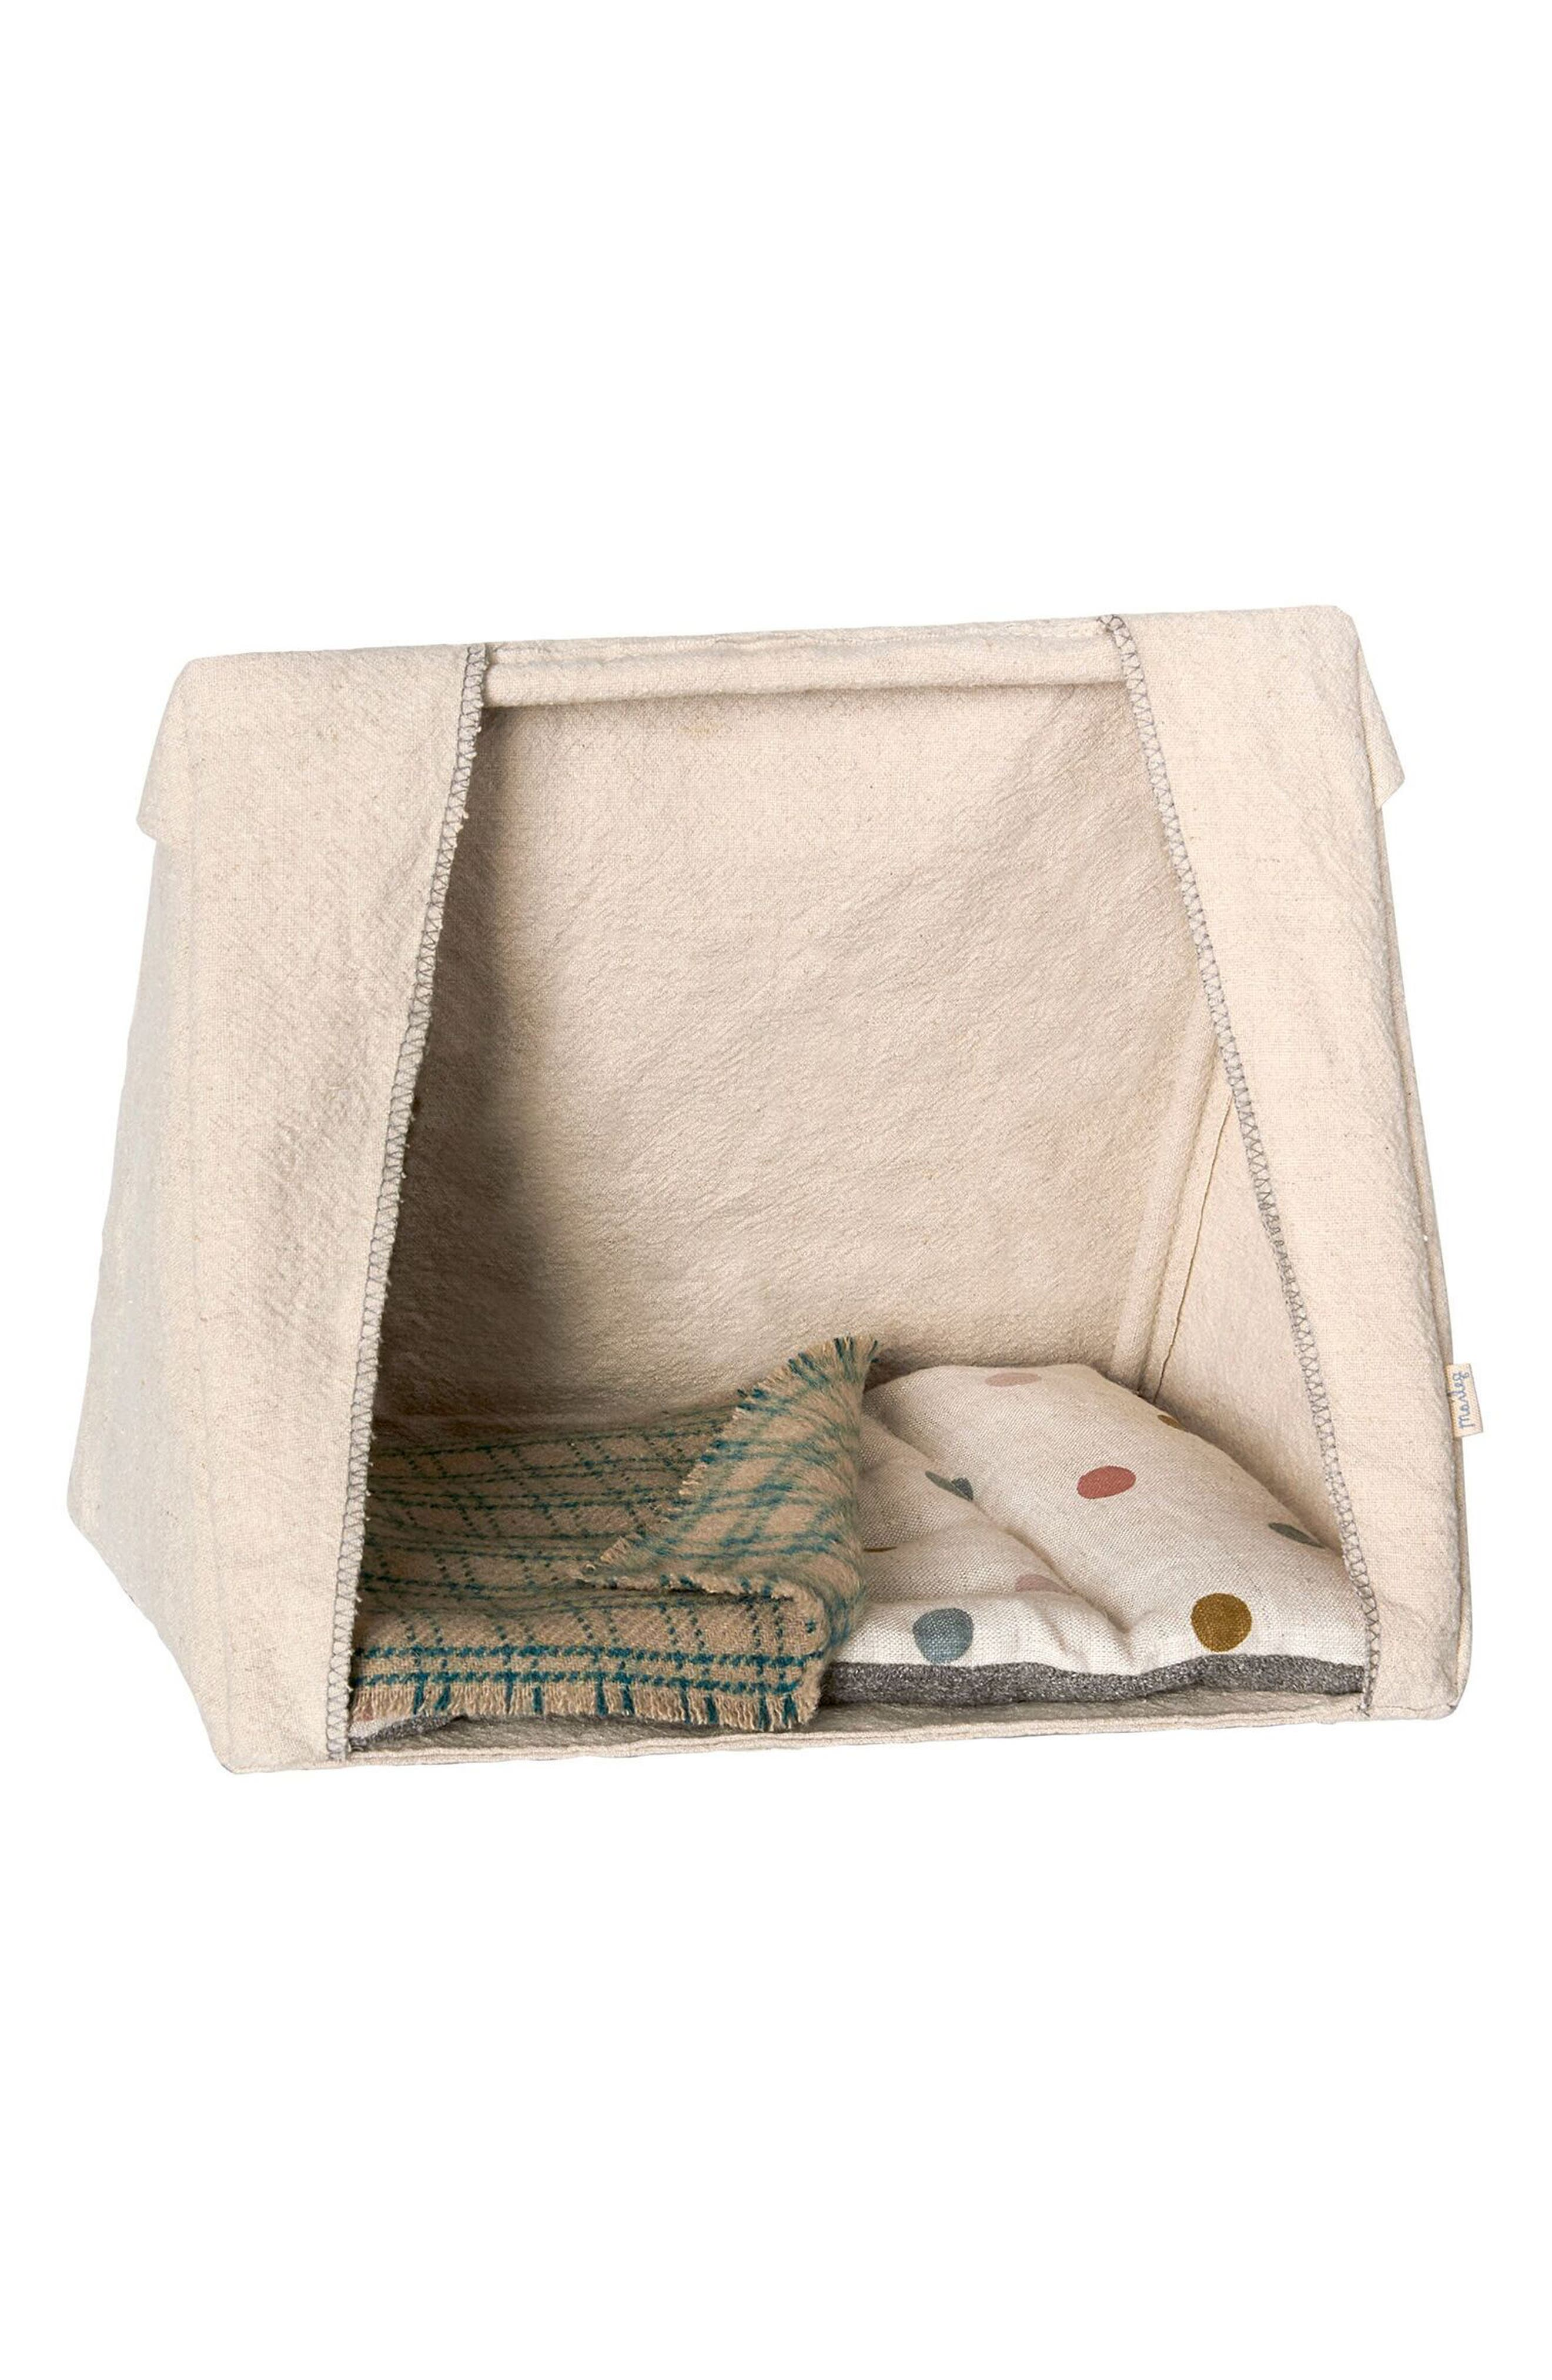 Alternate Image 2  - Maileg Mouse Tent 5-Piece Play Set